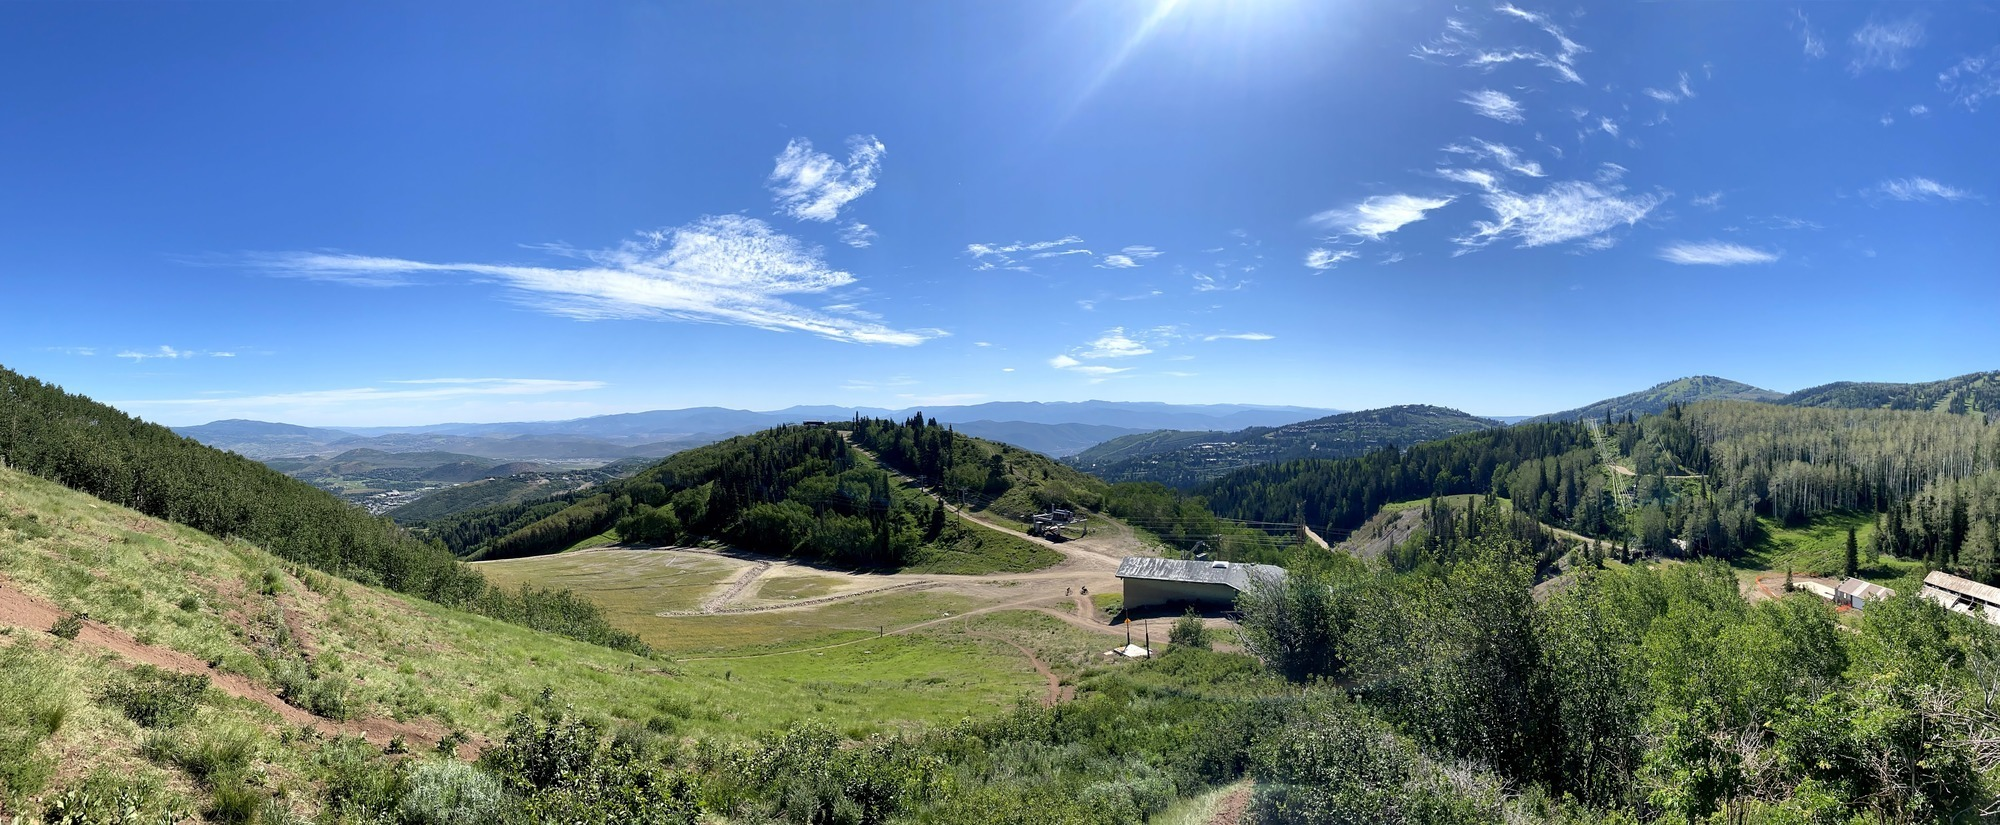 Mid-Mountain Trail in Park City